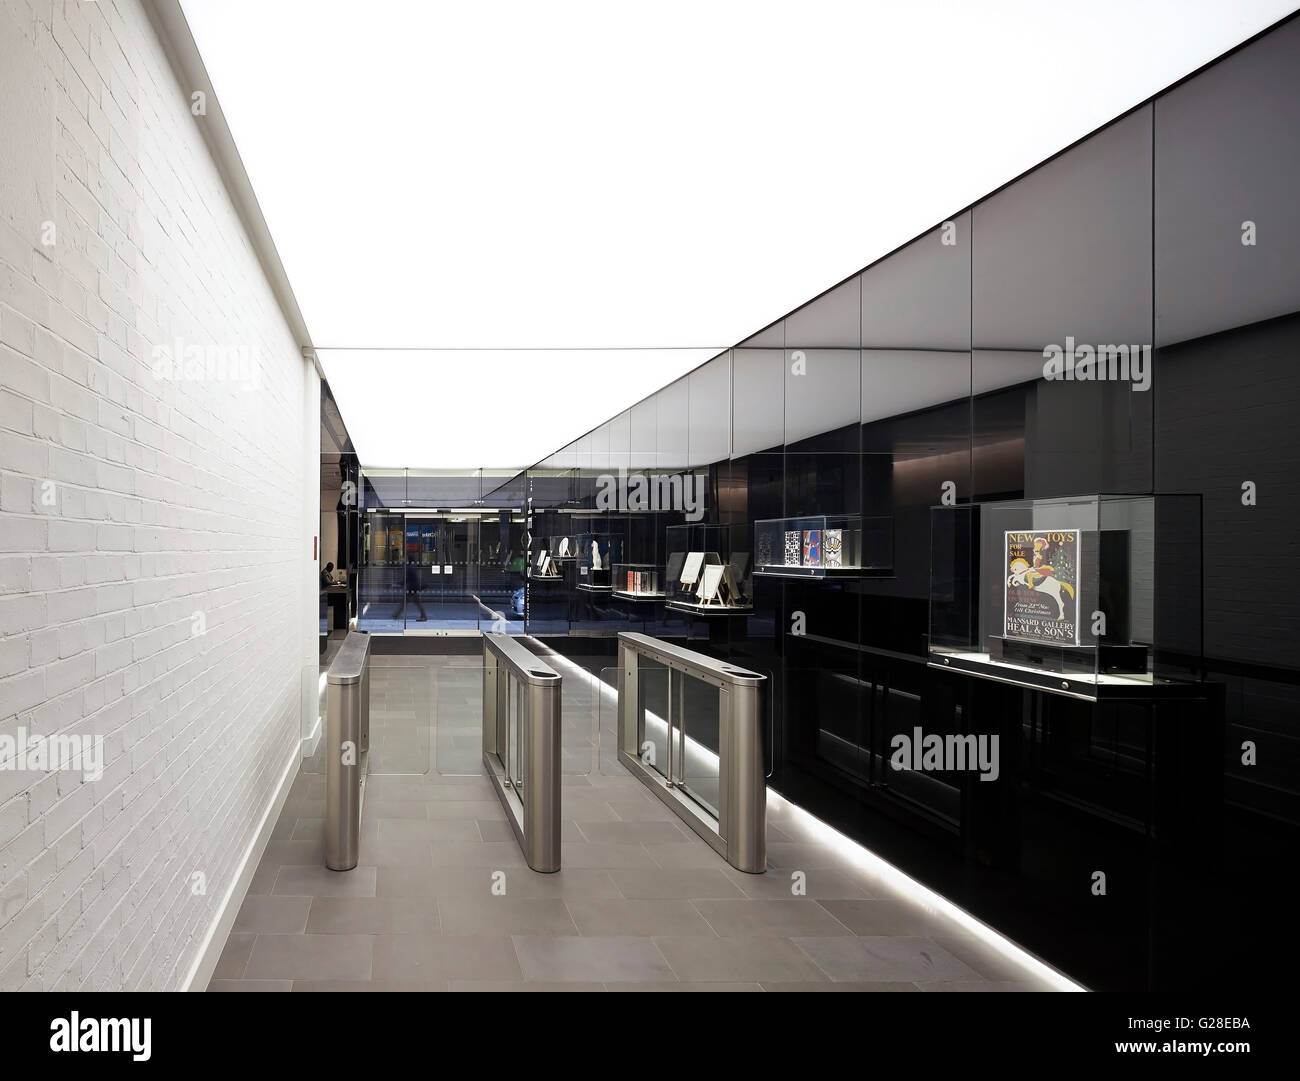 Entrance corridor with white brick wall and black polished panelling stock photo royalty free - Corridor entrance ...